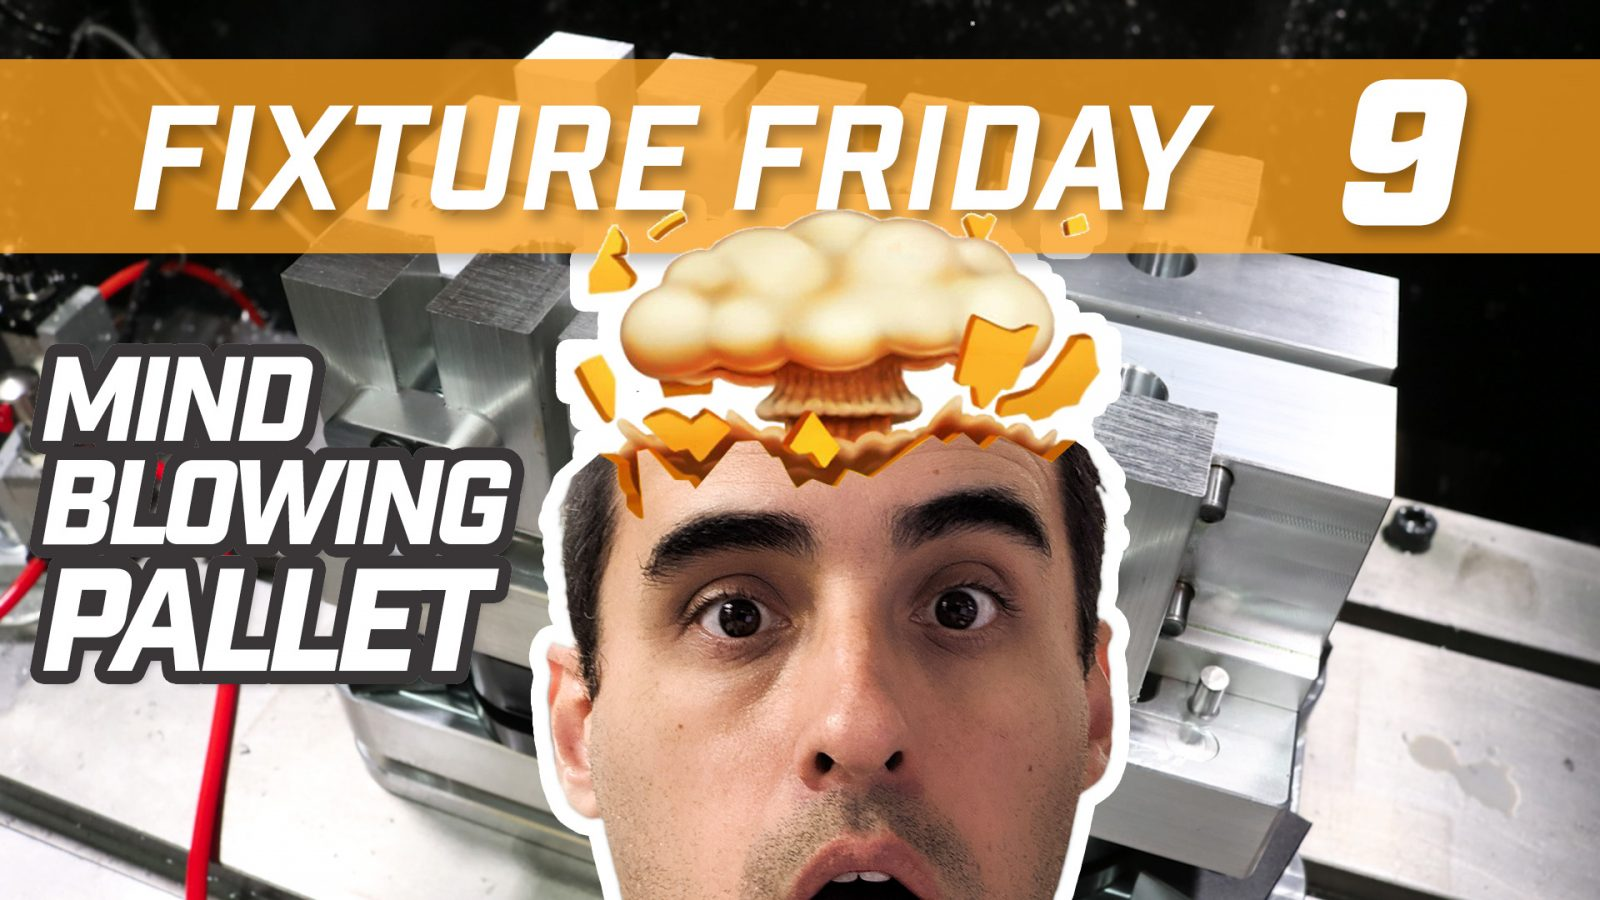 Fixture Friday Episode 9 Mind Blowing Customer Pallet